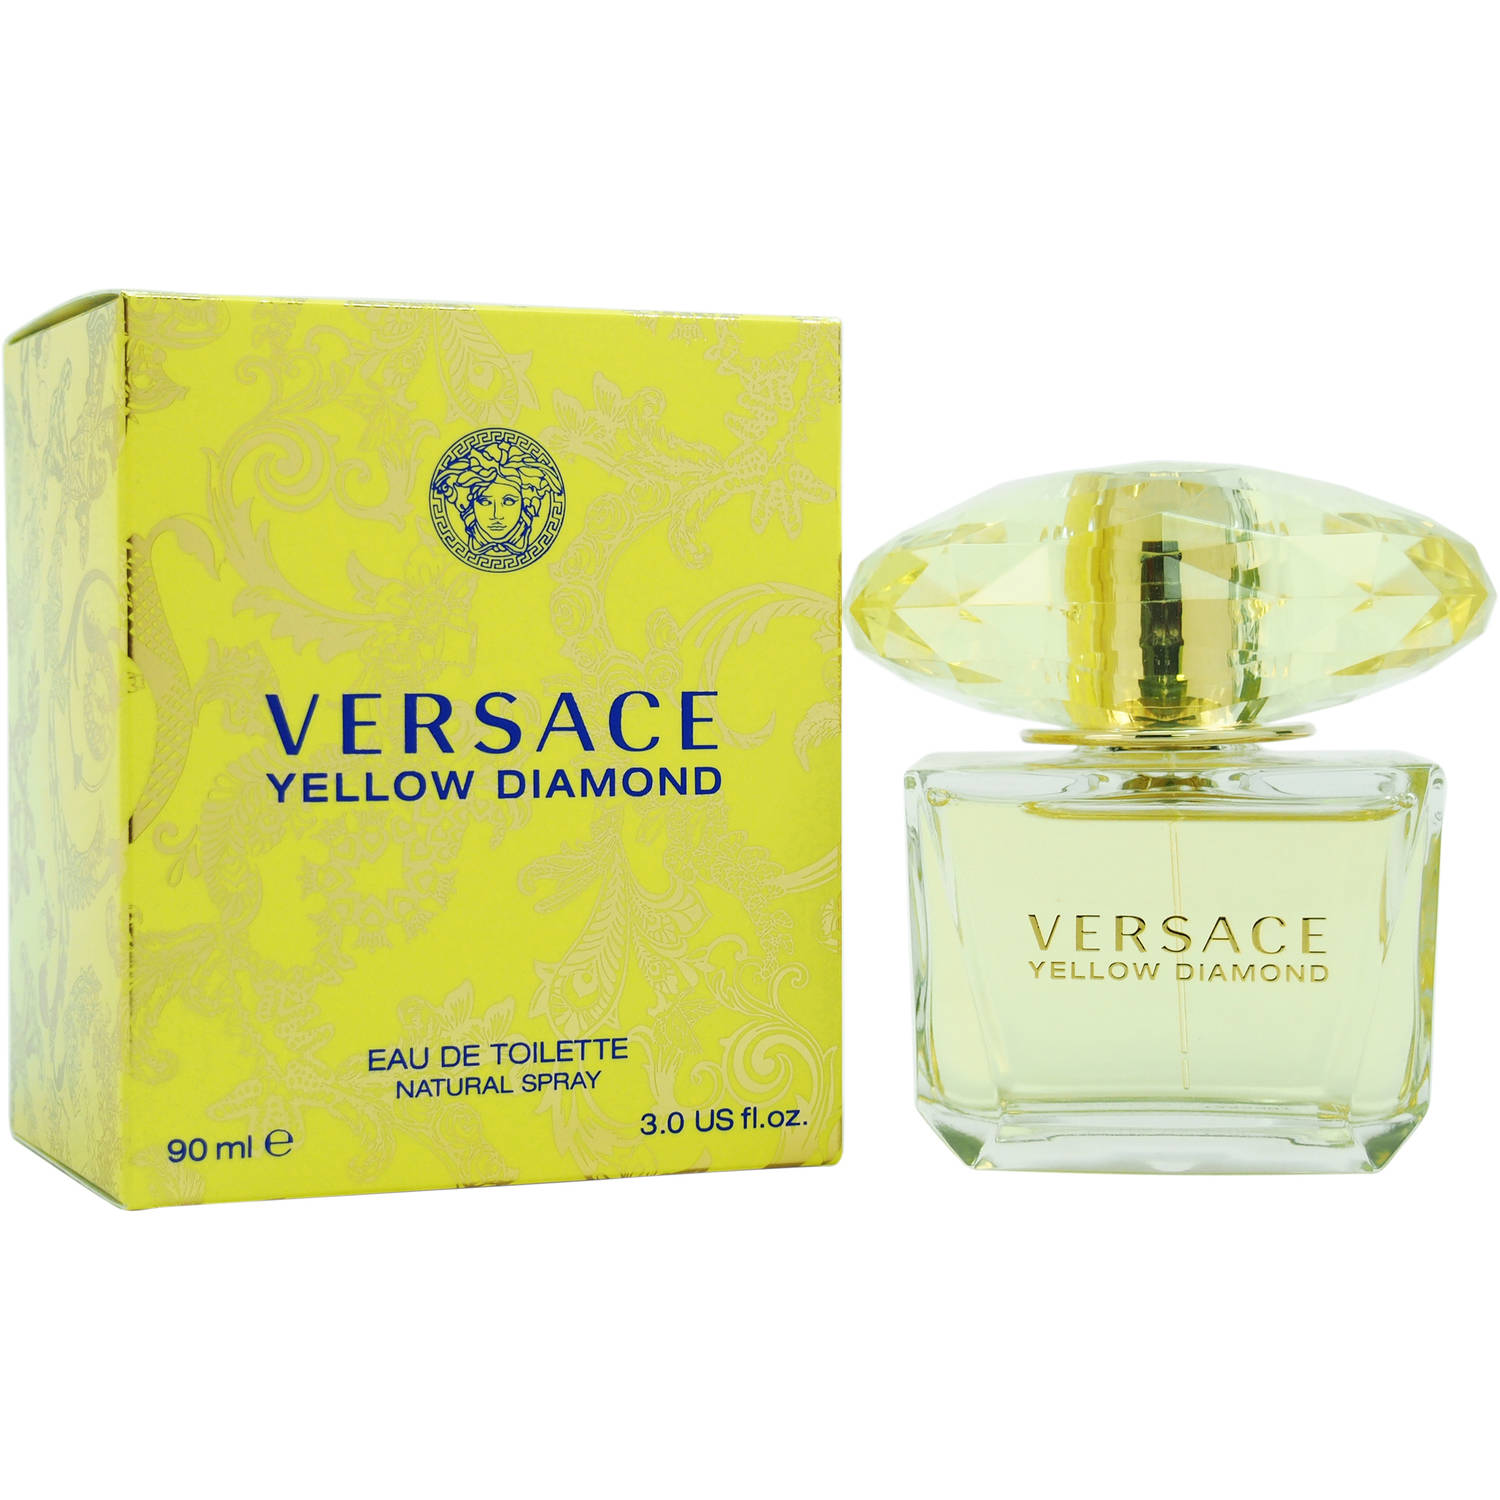 Versace Yellow Diamond for Women Eau de Toilette, 3 oz